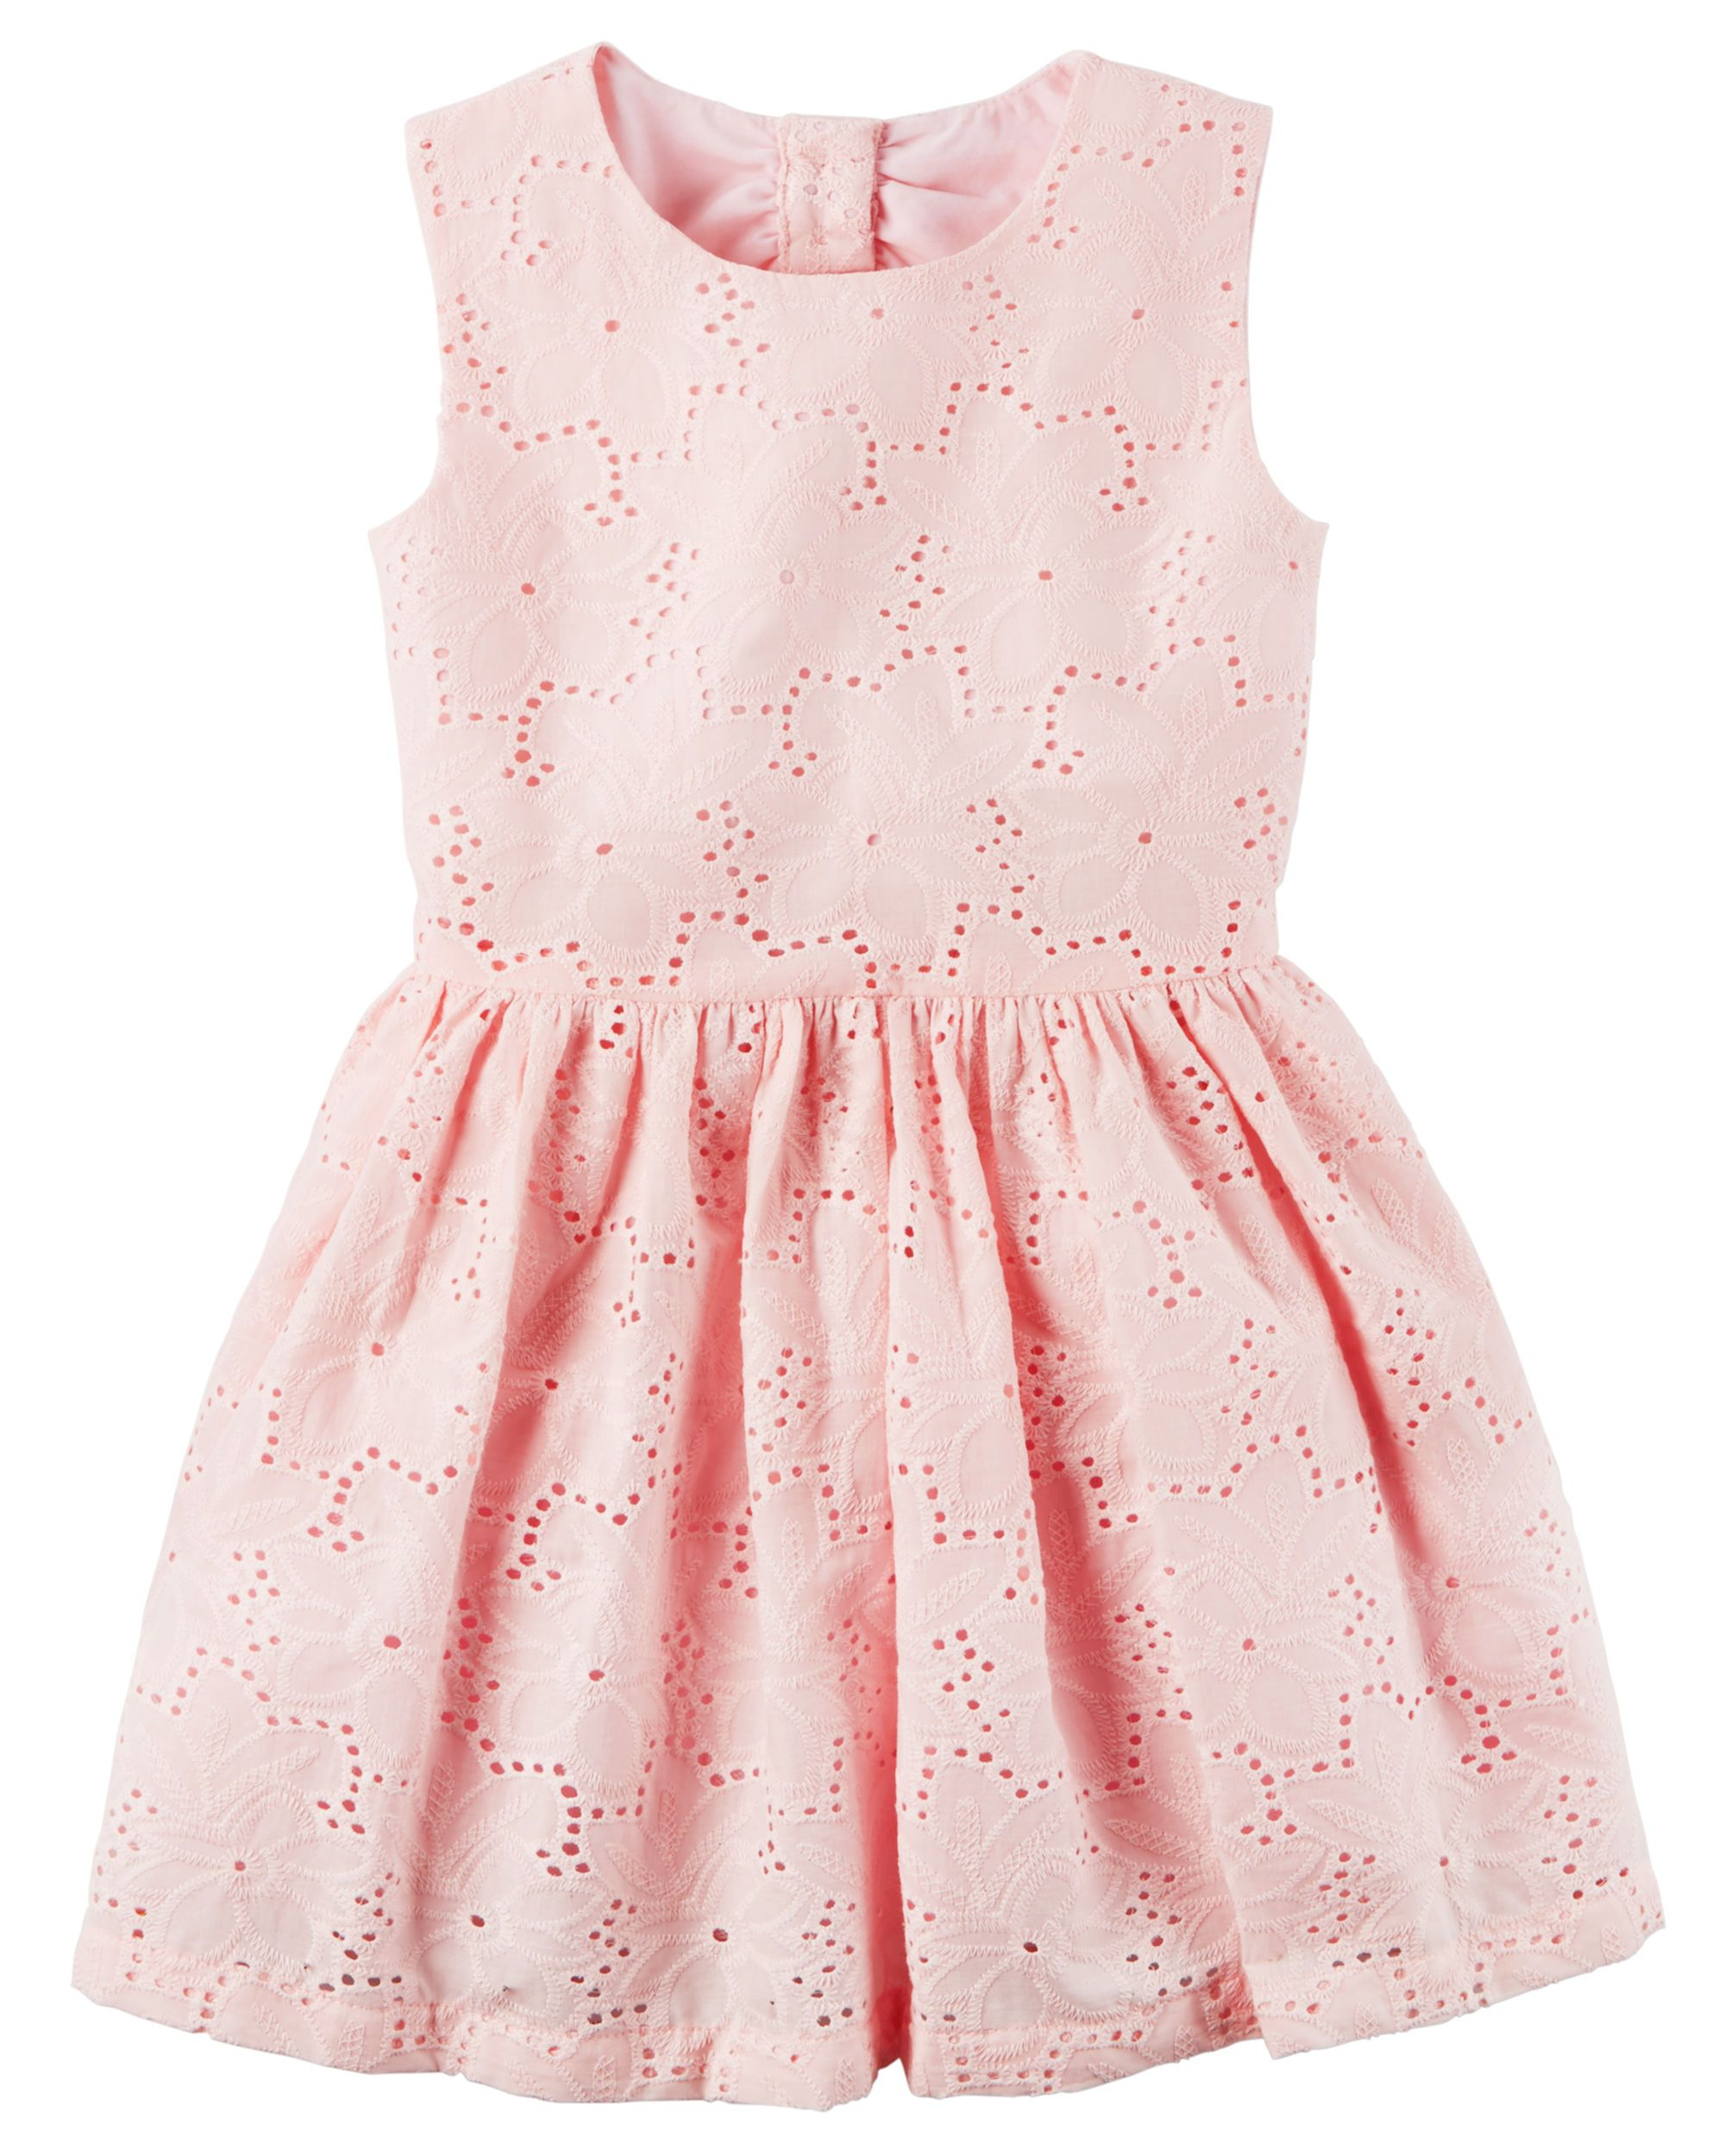 Floral Eyelet Dress | Toddler girls, Babies clothes and Kids girls